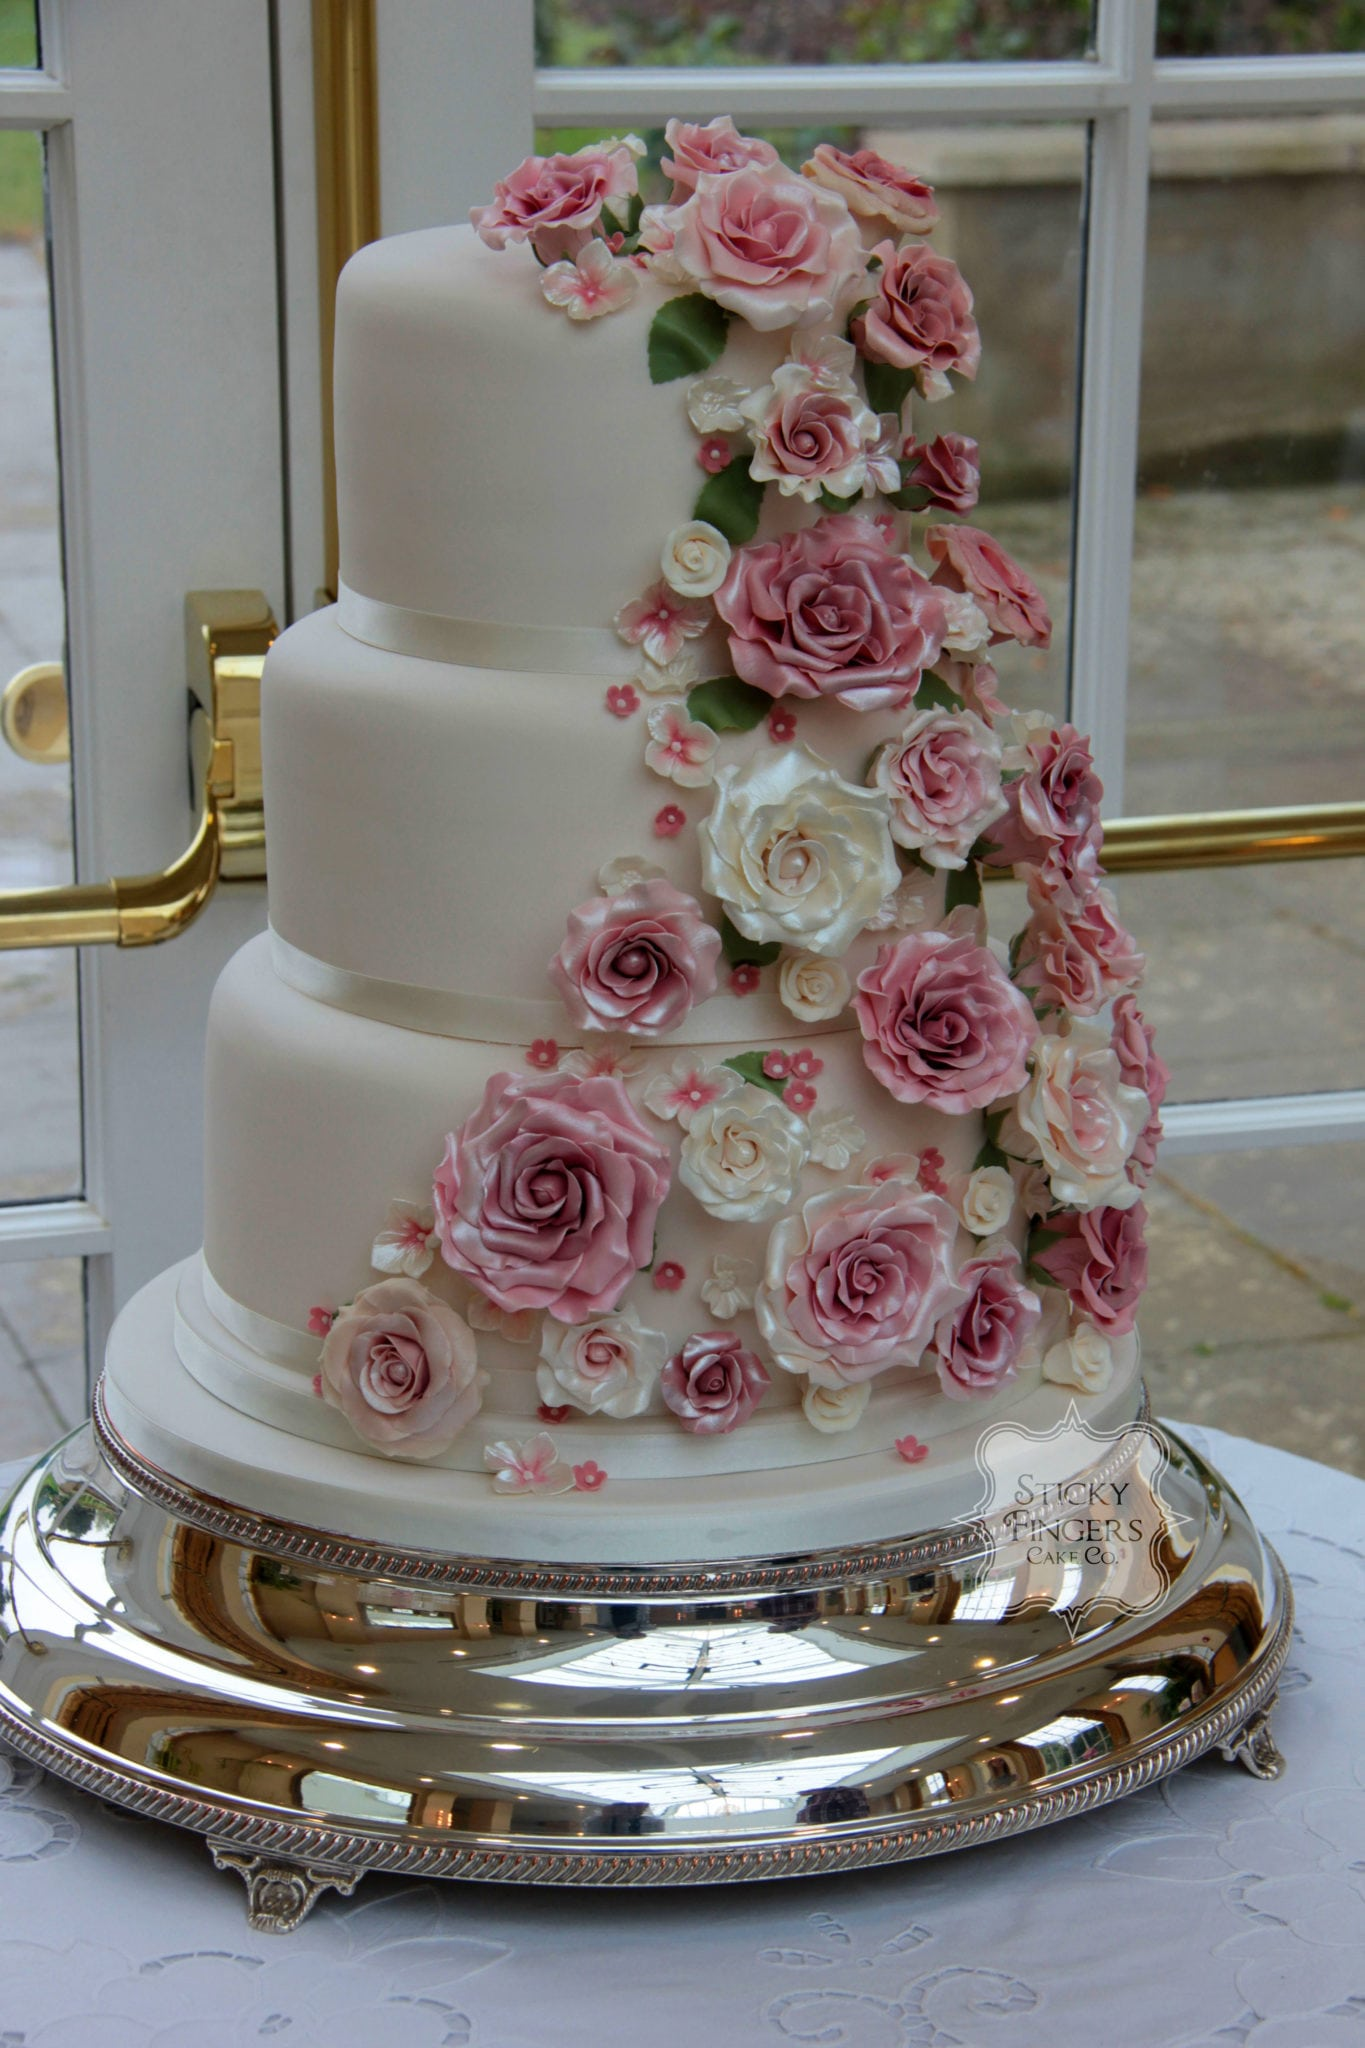 The Bespoke Wedding Cake…